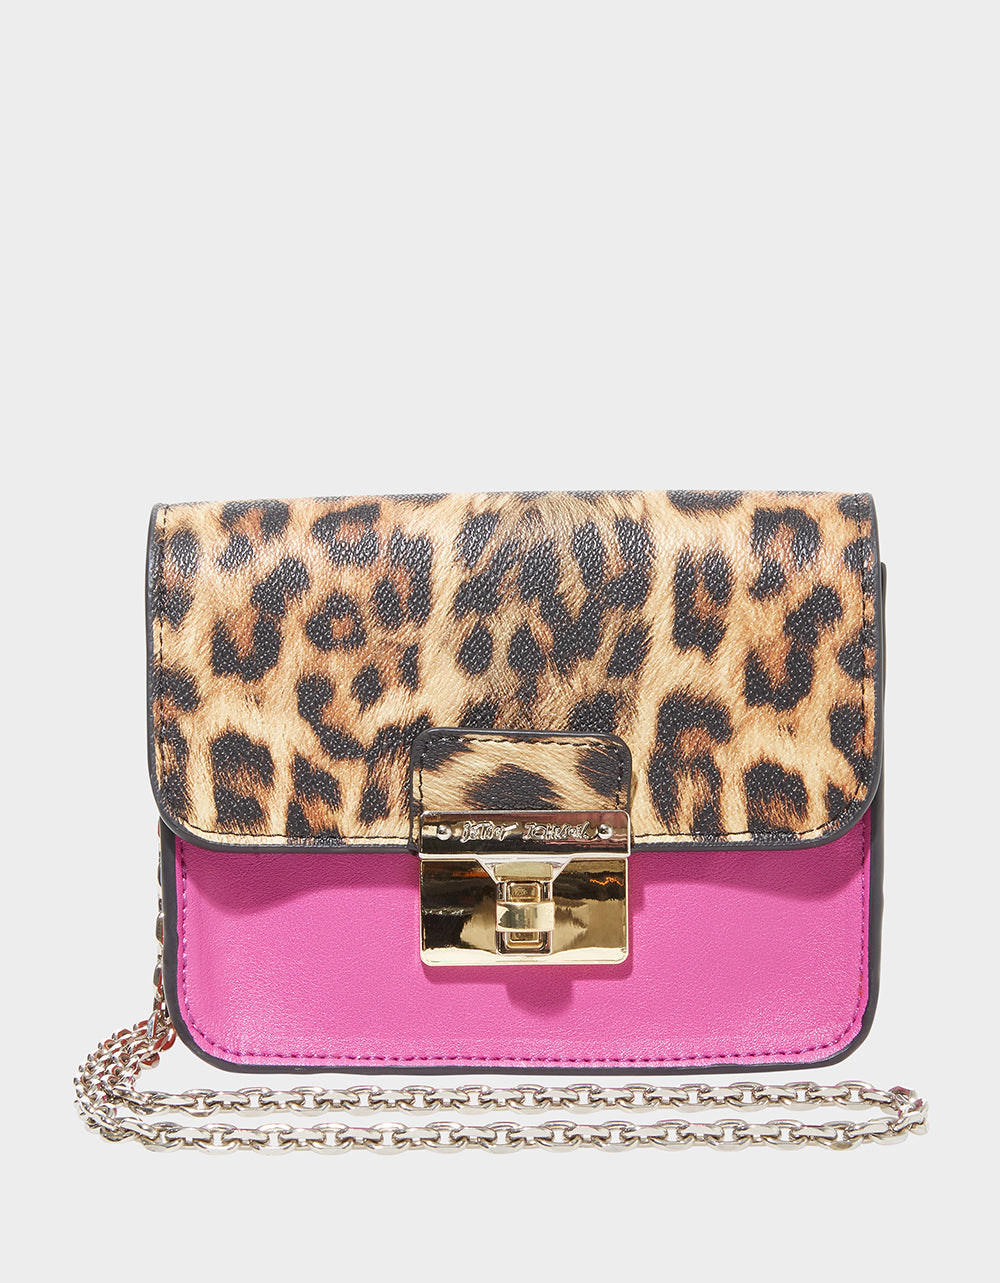 MIXED MEDIA CROSSBODY MAGENTA - HANDBAGS - Betsey Johnson